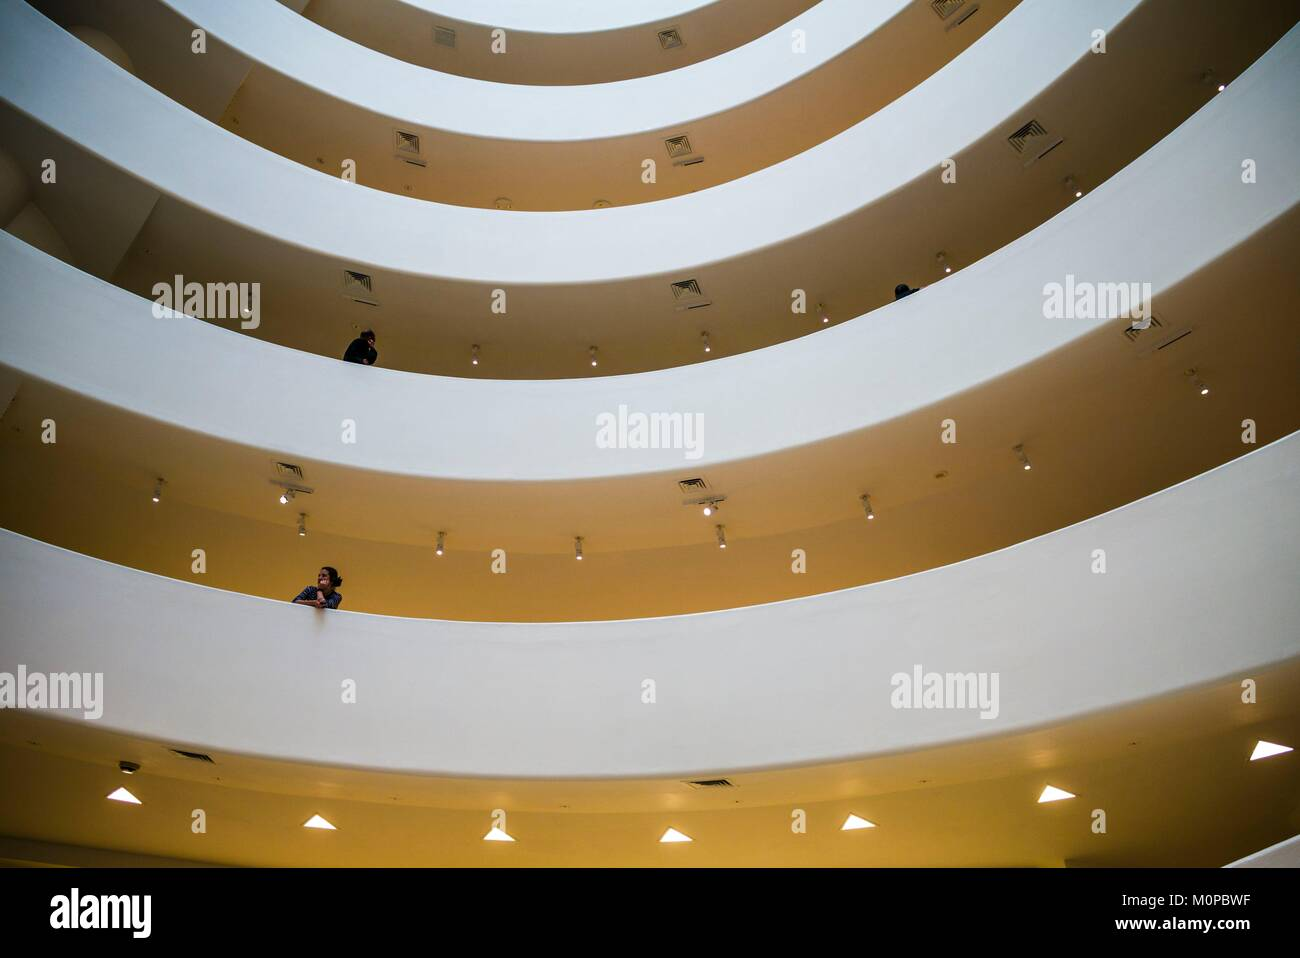 United States,New York,New York City,Upper East Side,Guggenheim Museum,lobby interior Stock Photo